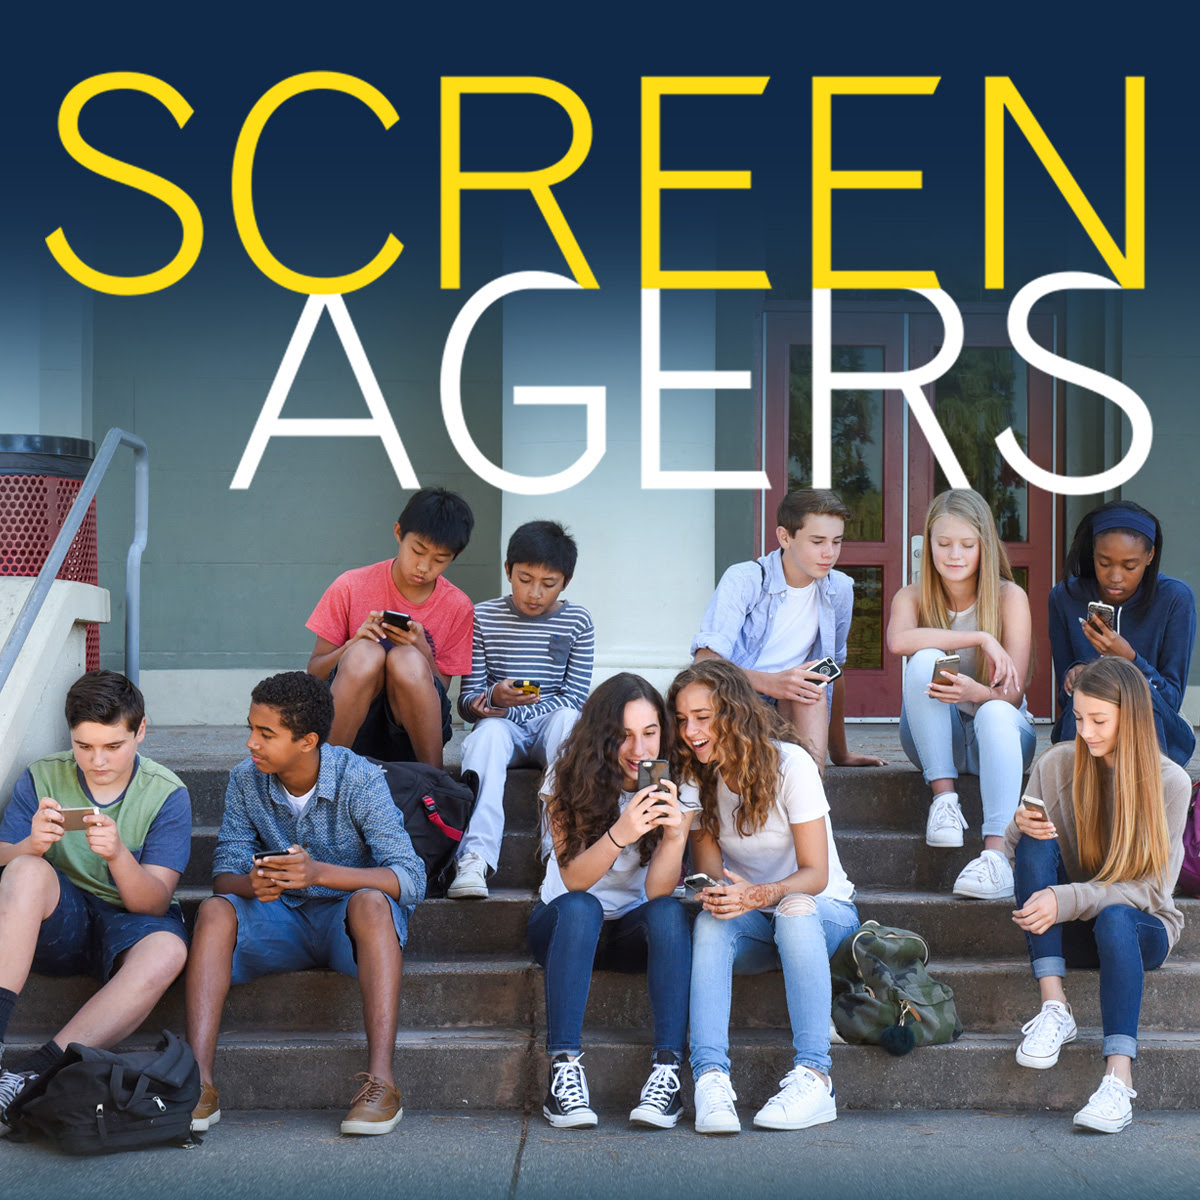 Screenagers Film Presented By Annapolis Orthodontics